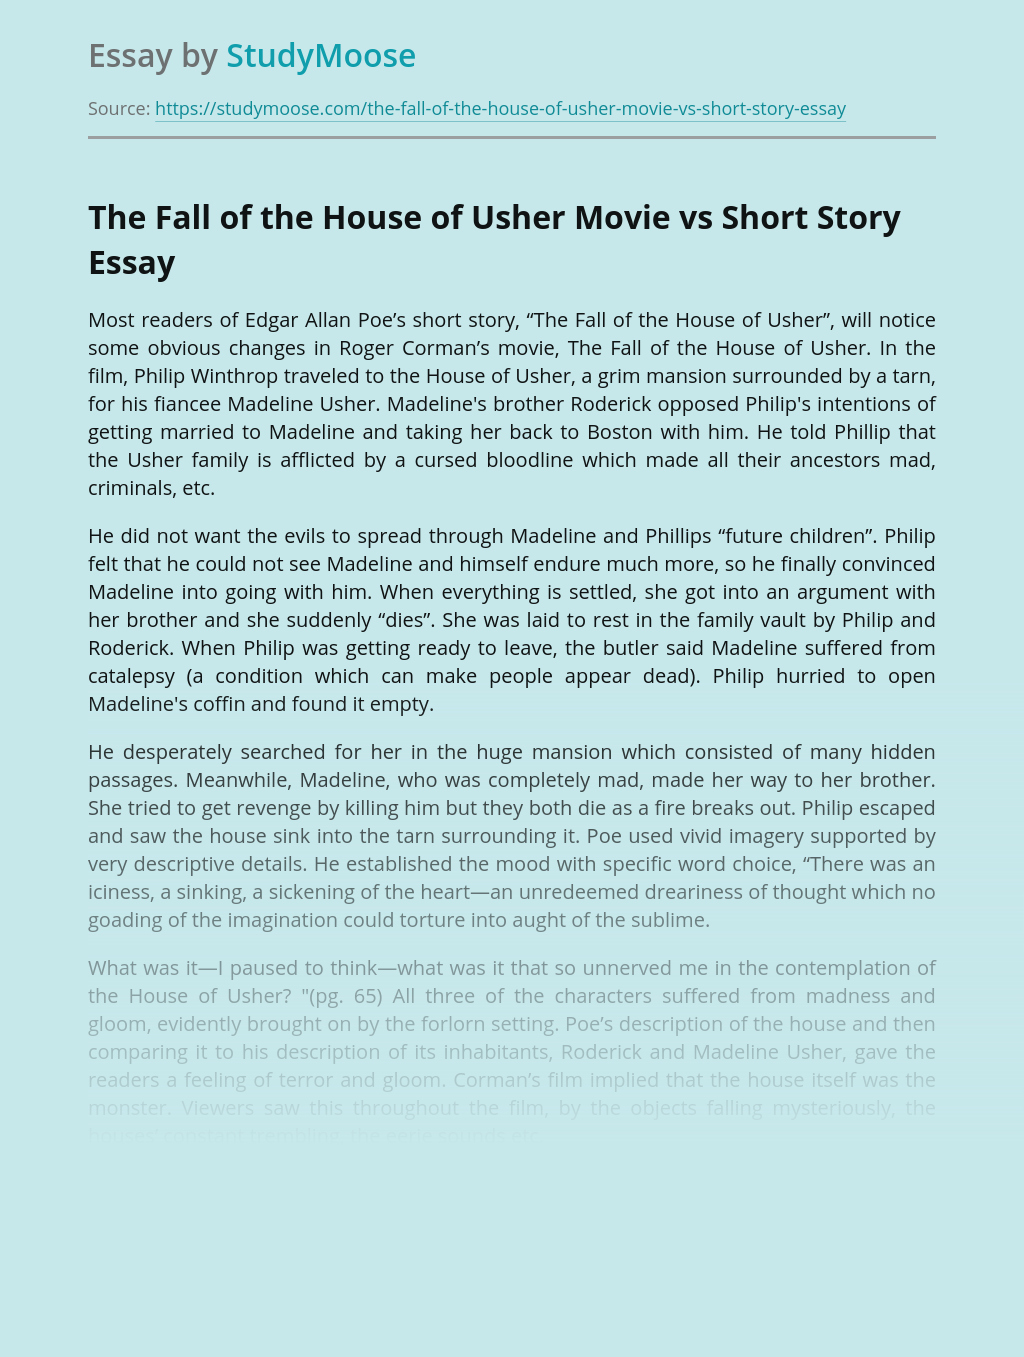 The Fall of the House of Usher Movie vs Short Story